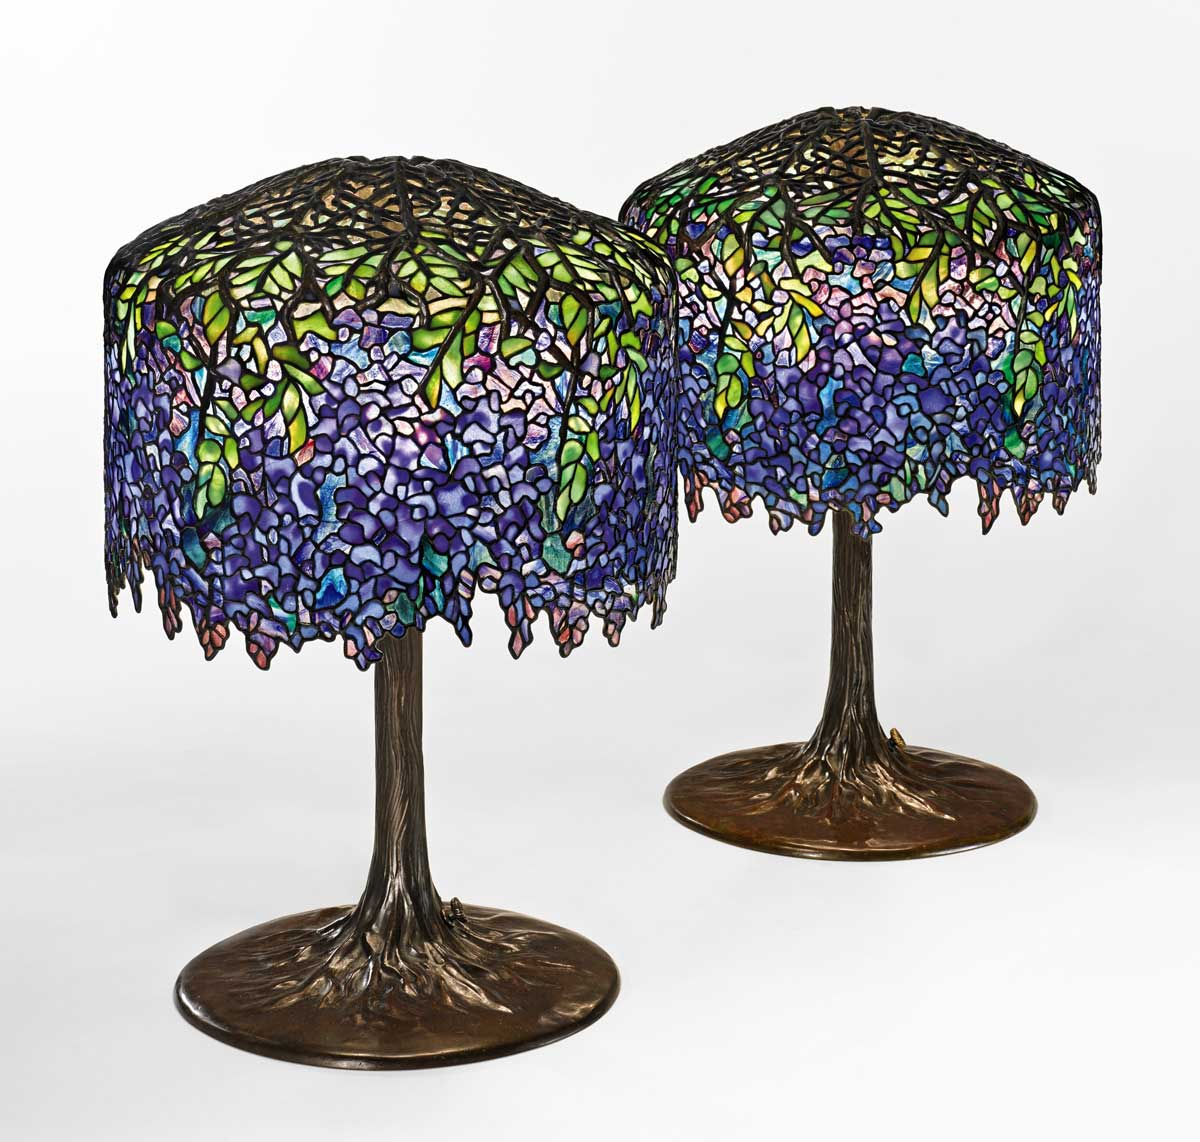 https://www.artsandcollections.com/wp-content/uploads/2018/10/tiffany-lamps.jpg